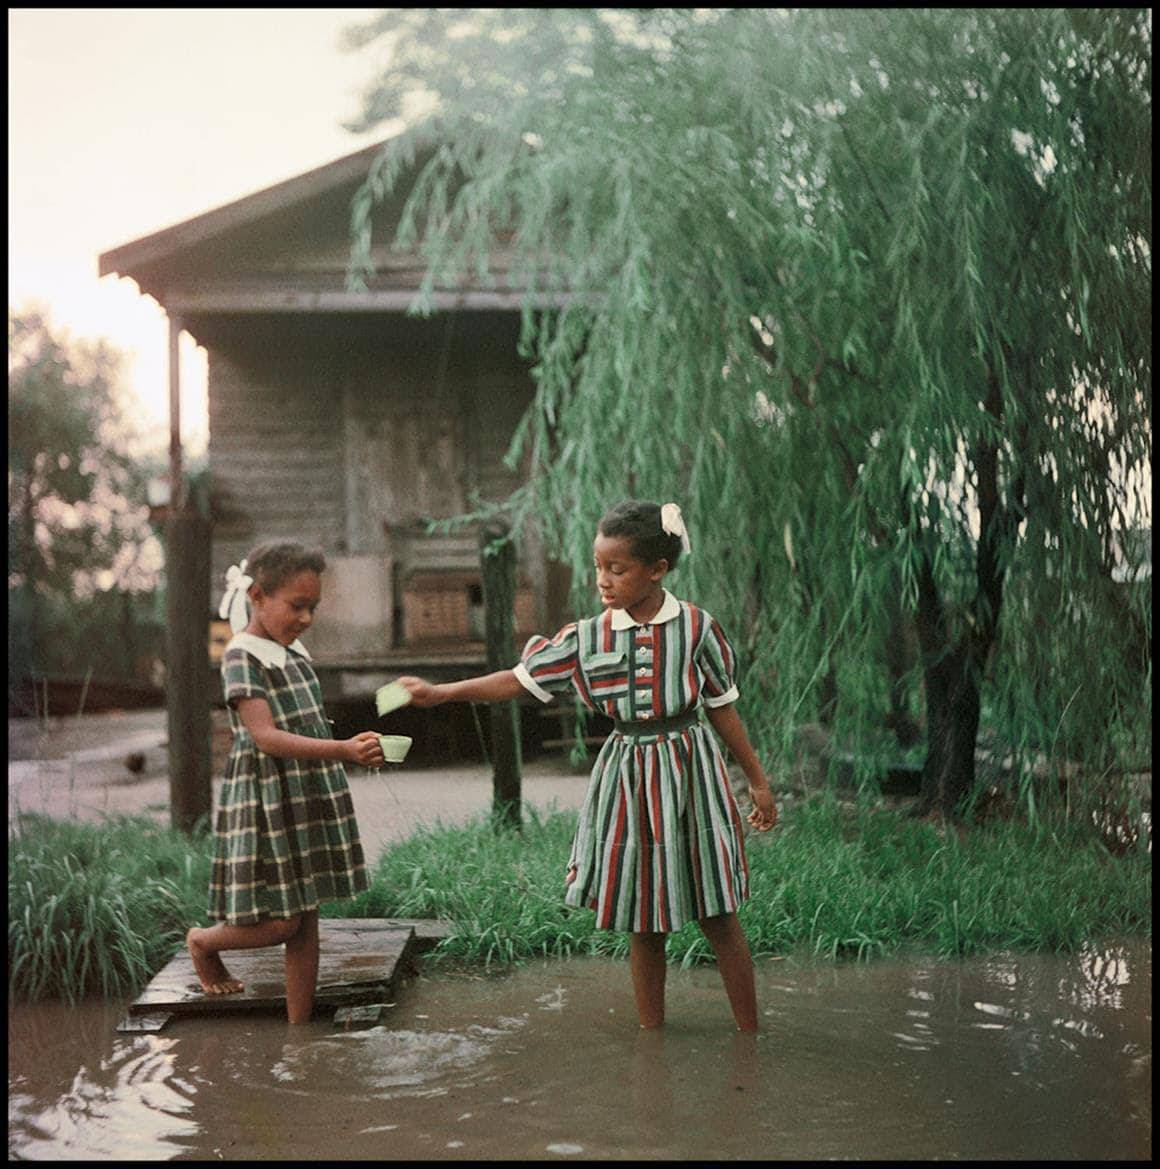 Gordon Parks, Untitled, Alabama, 1956 Courtesy of and copyright The Gordon Parks Foundation